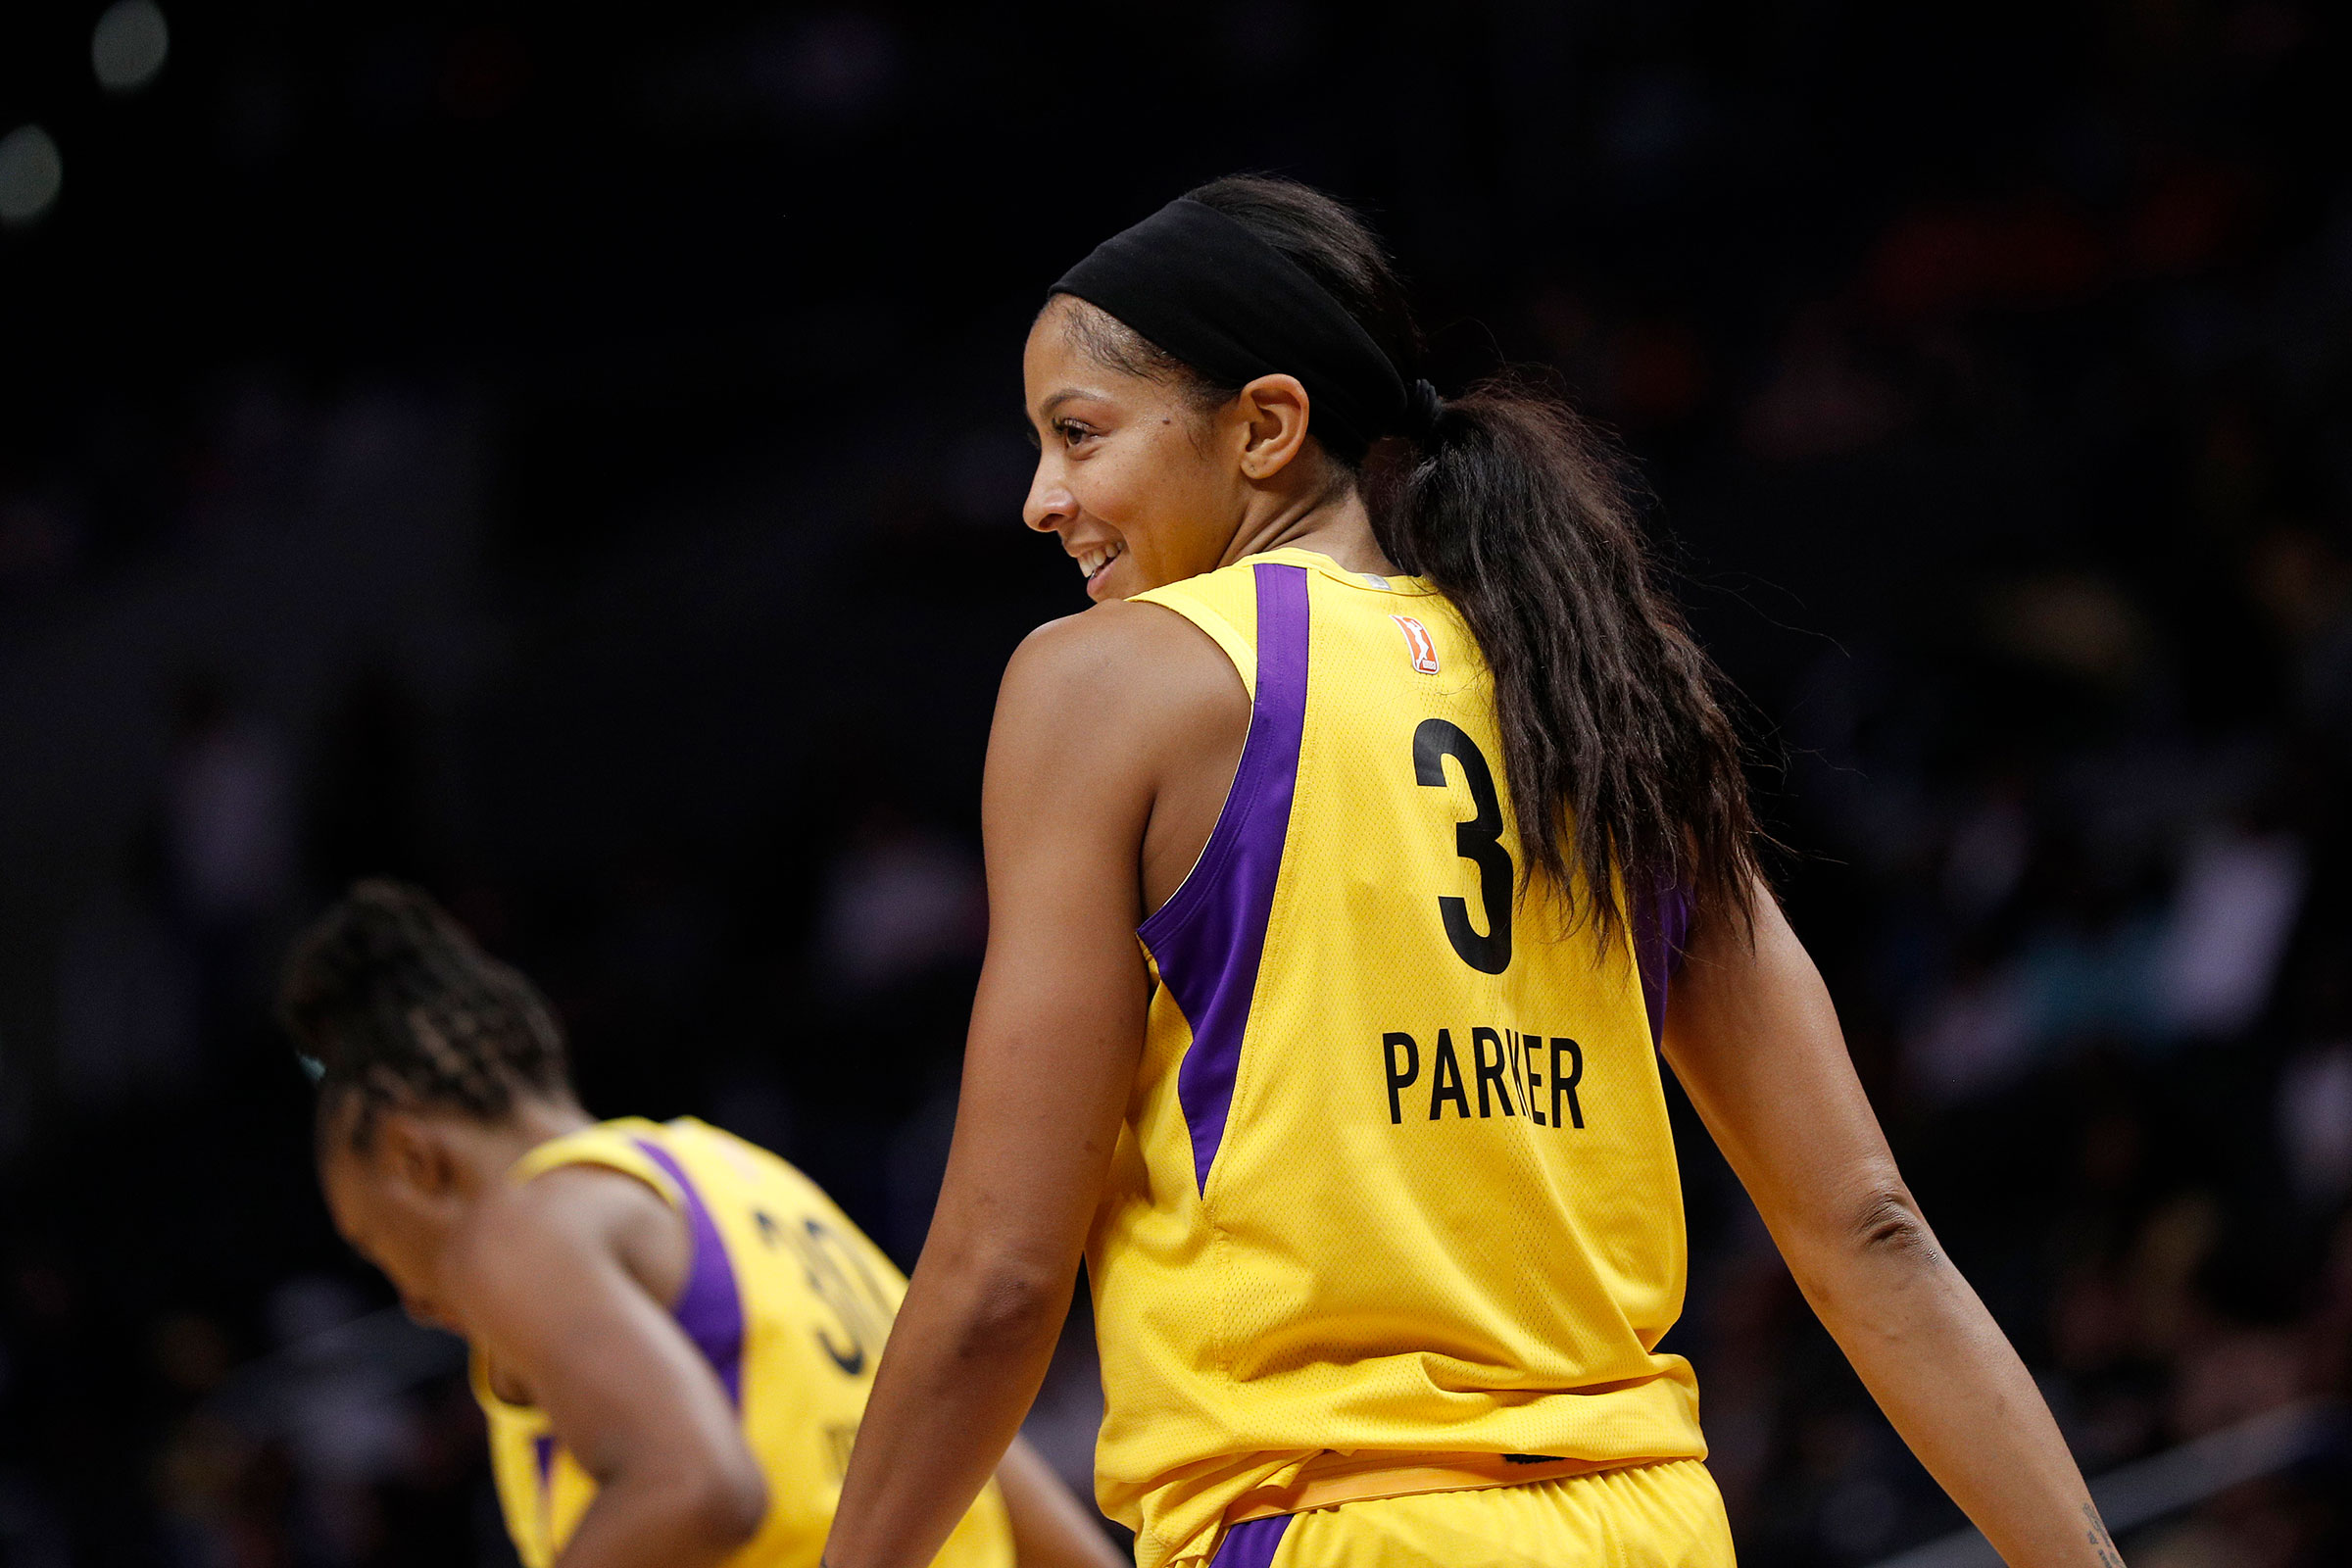 Candace Parker of the Los Angeles Sparks during a game against the Phoenix Mercury on Aug. 08, 2019 in Los Angeles.